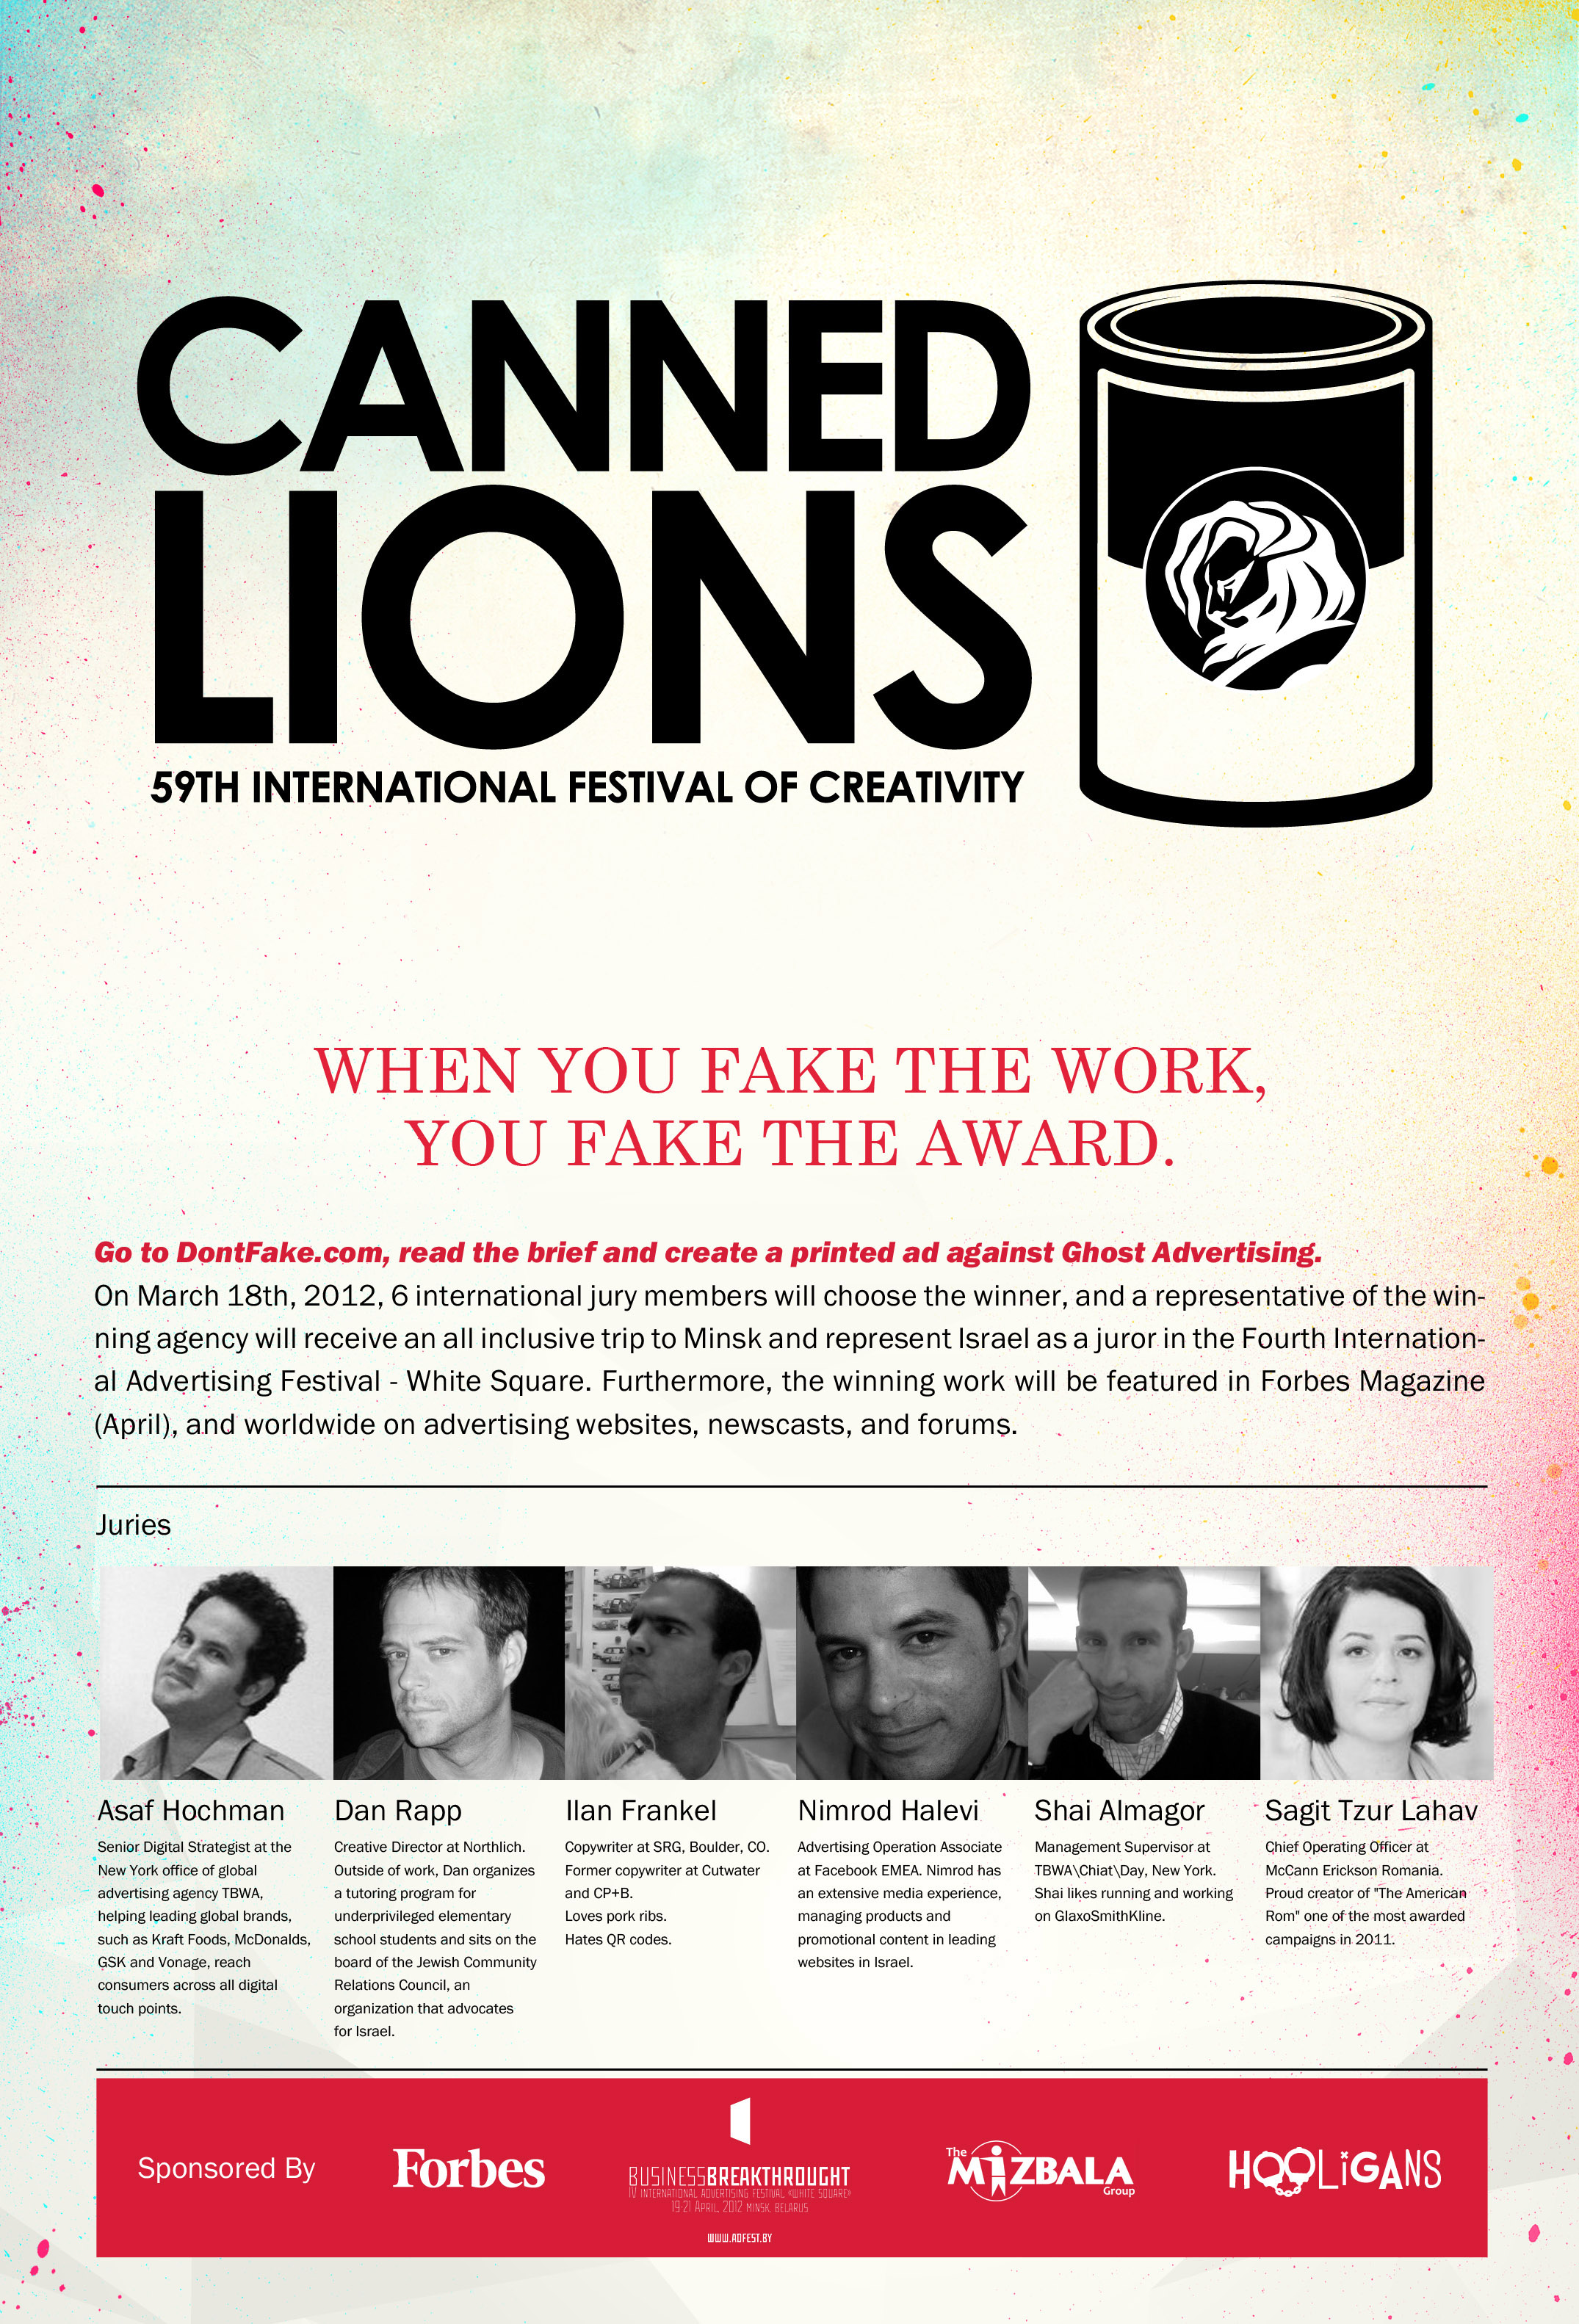 Canned Lions